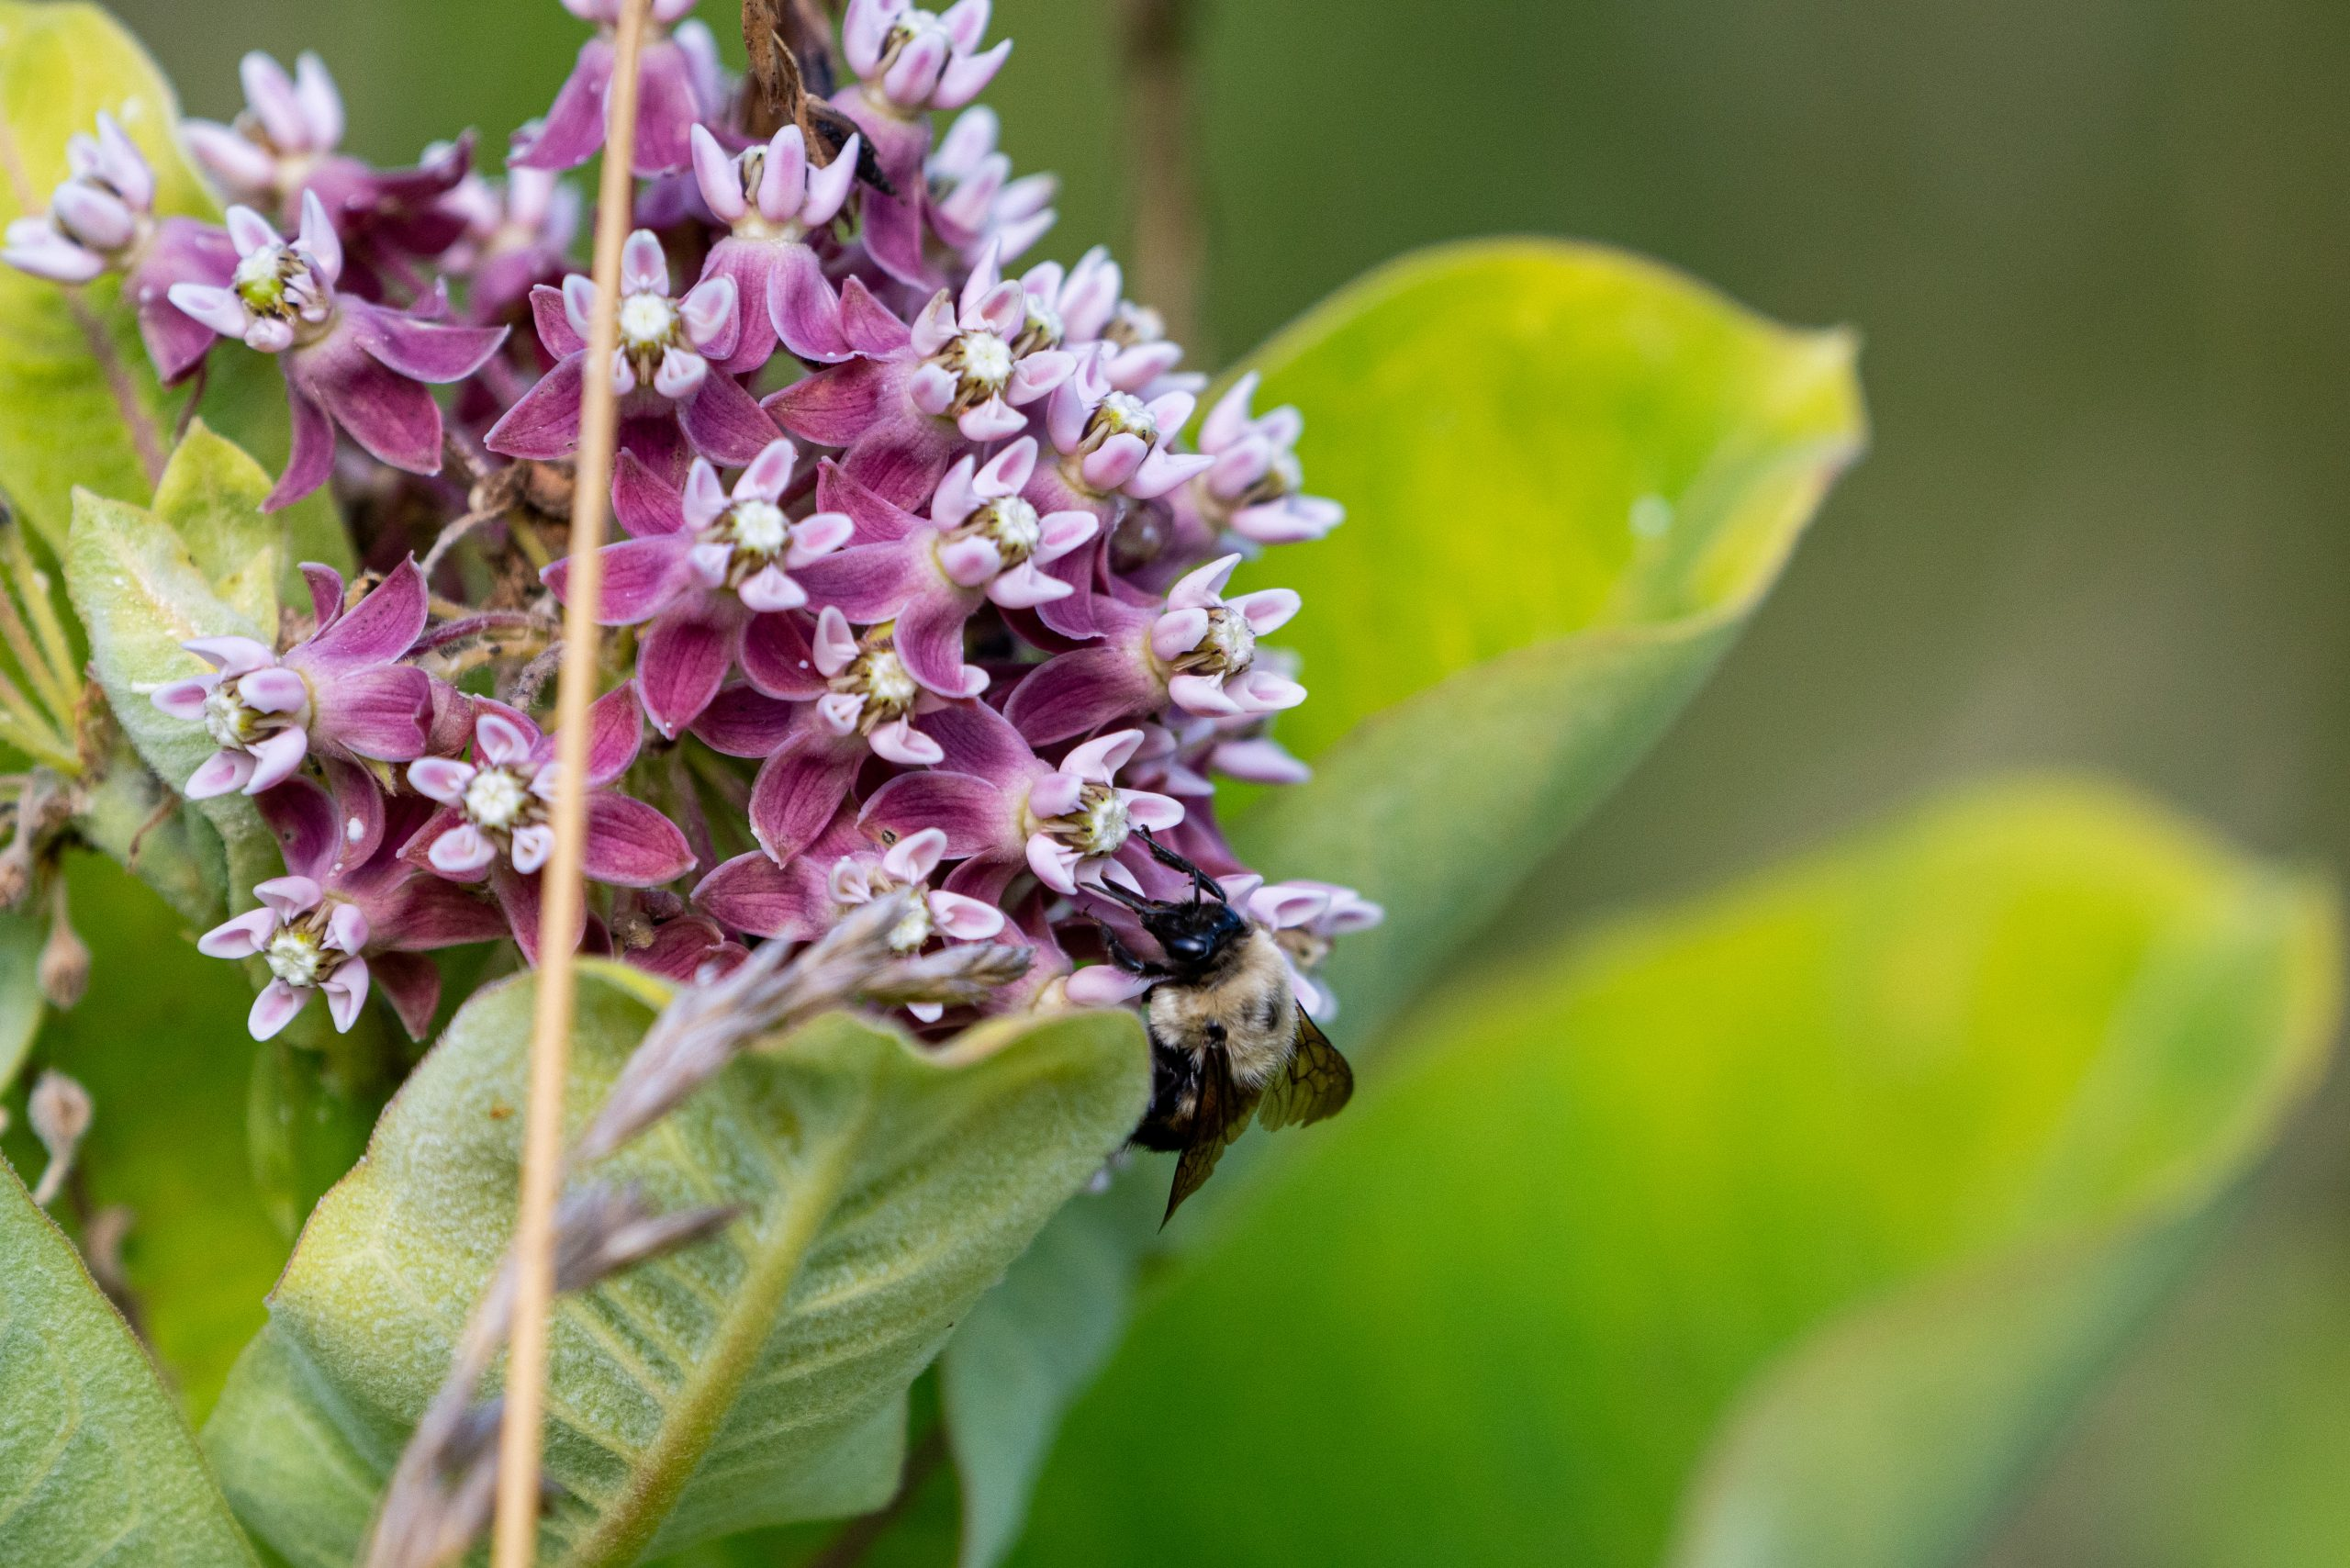 A bee pollinates a milkweed plant.